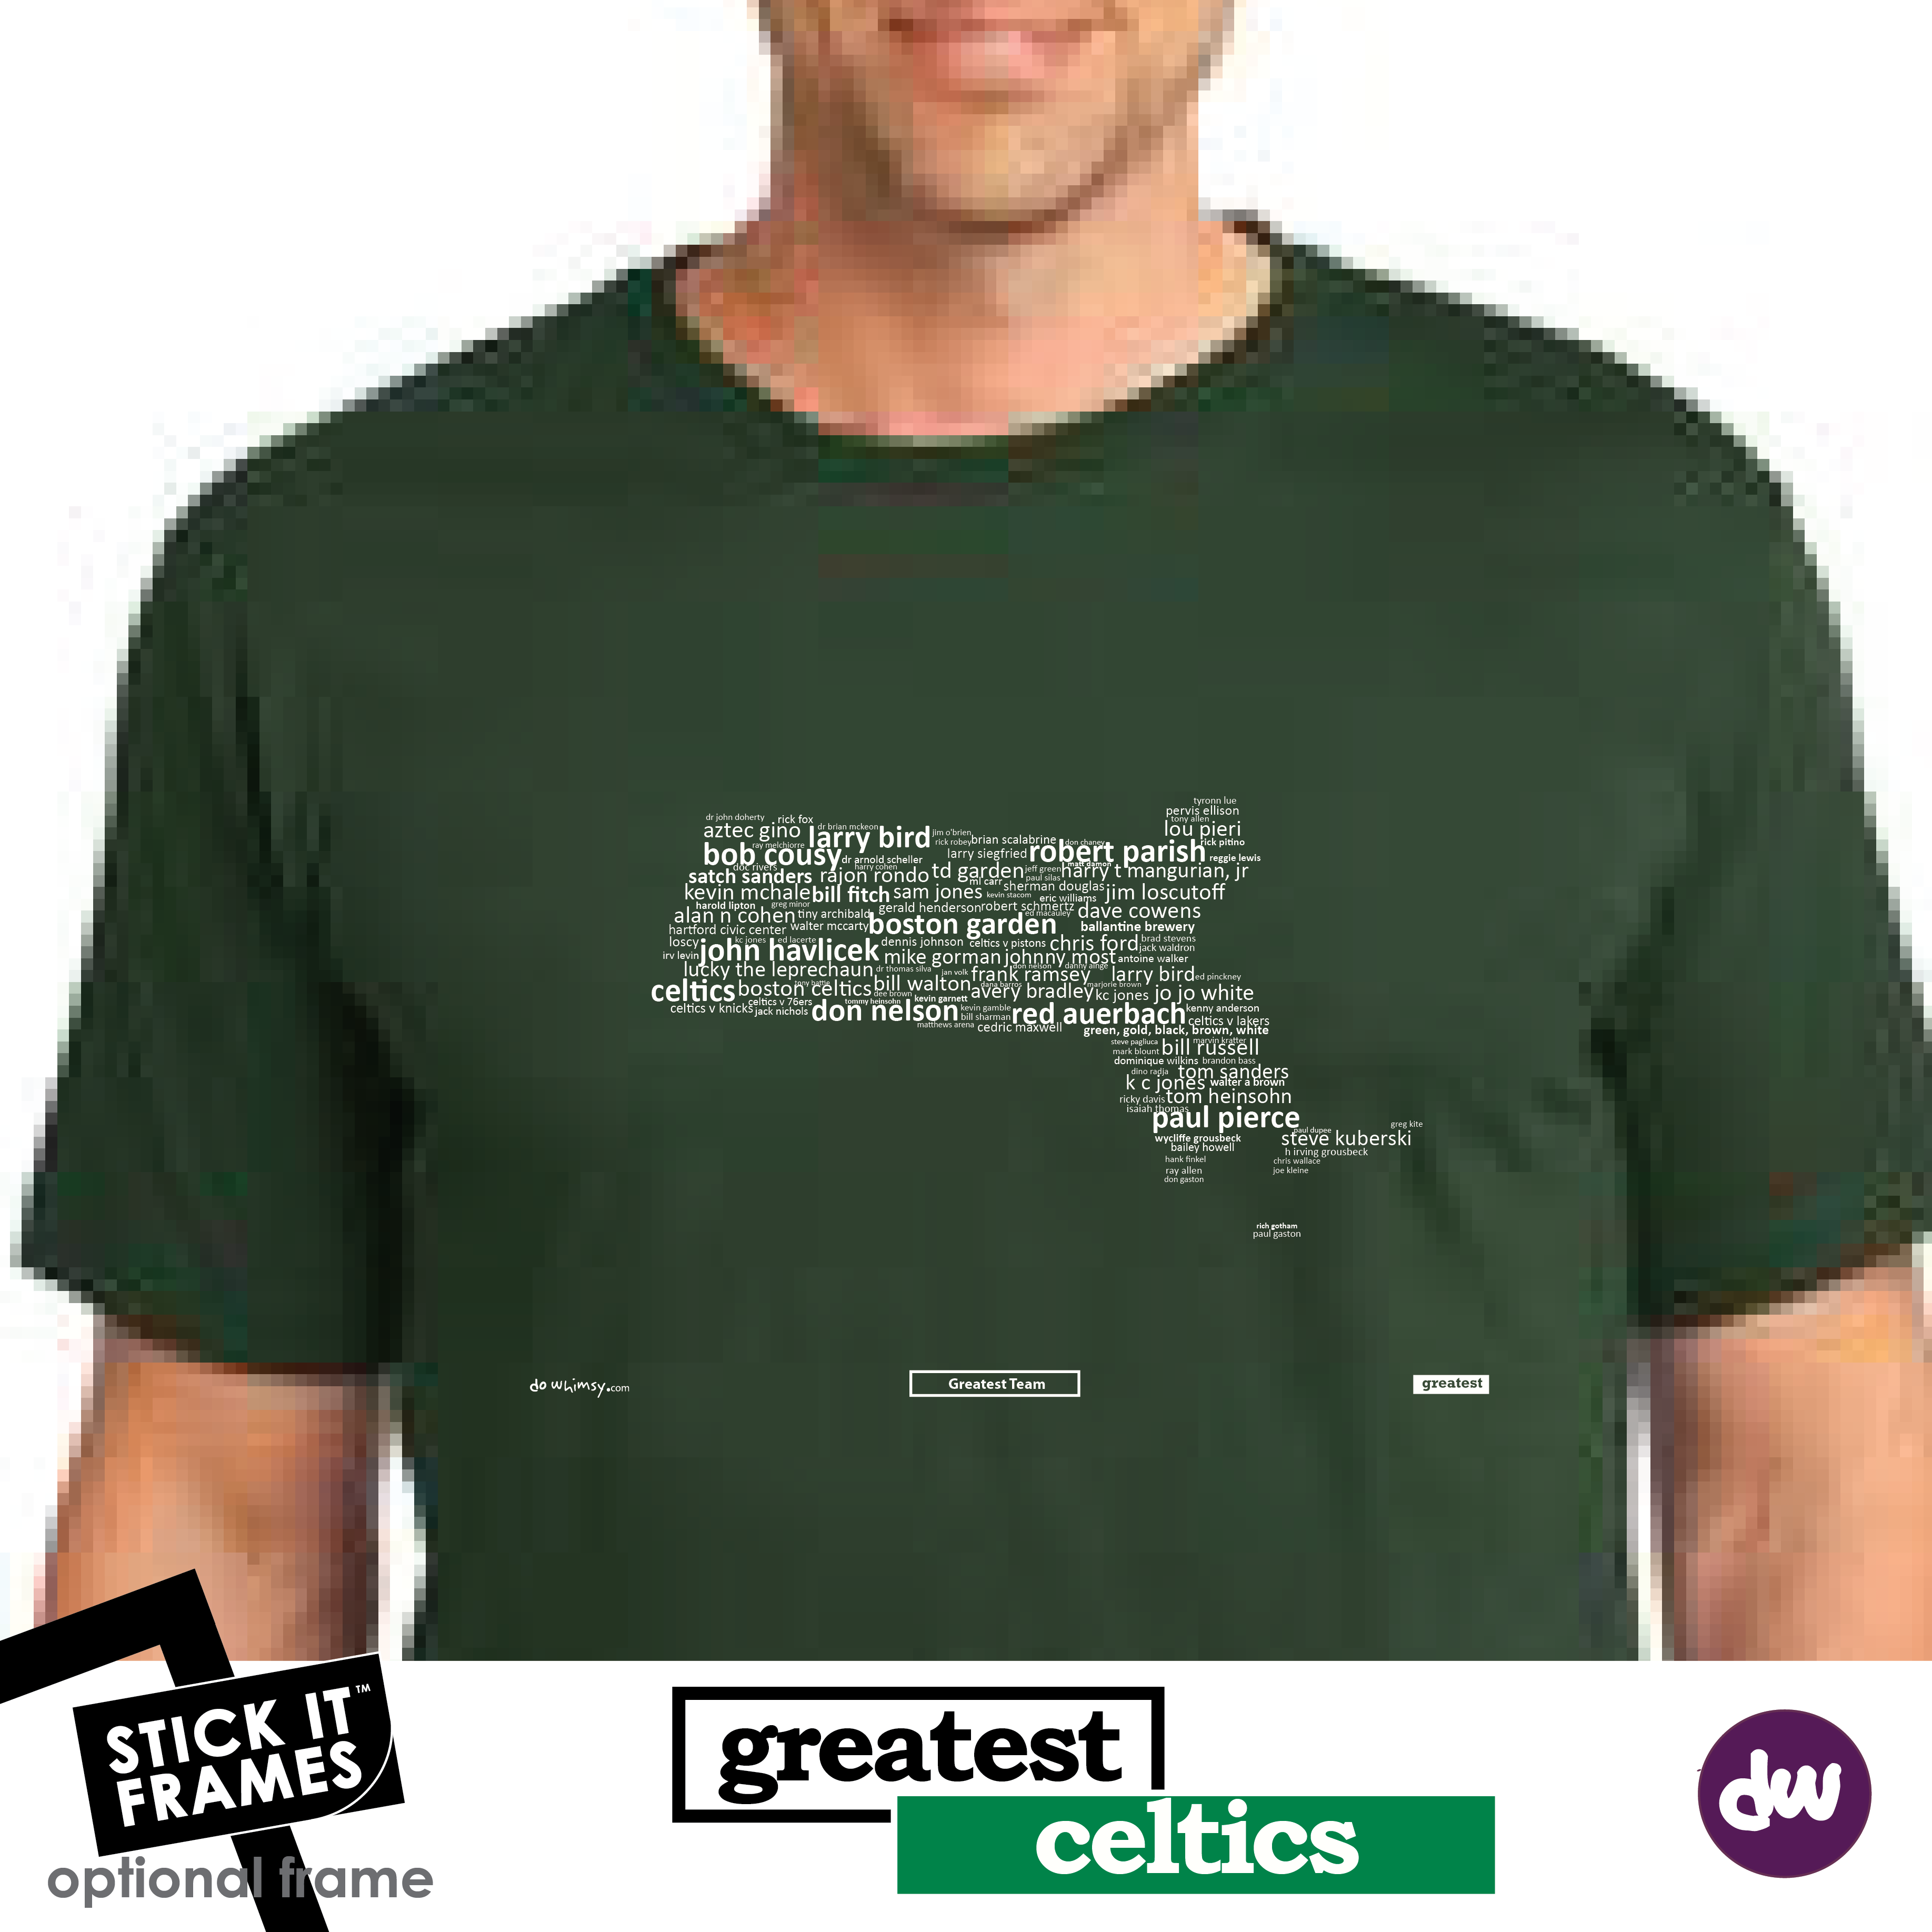 Greatest Massachusetts (Celtics) - All Products (Shirt, Art, Frames (R))